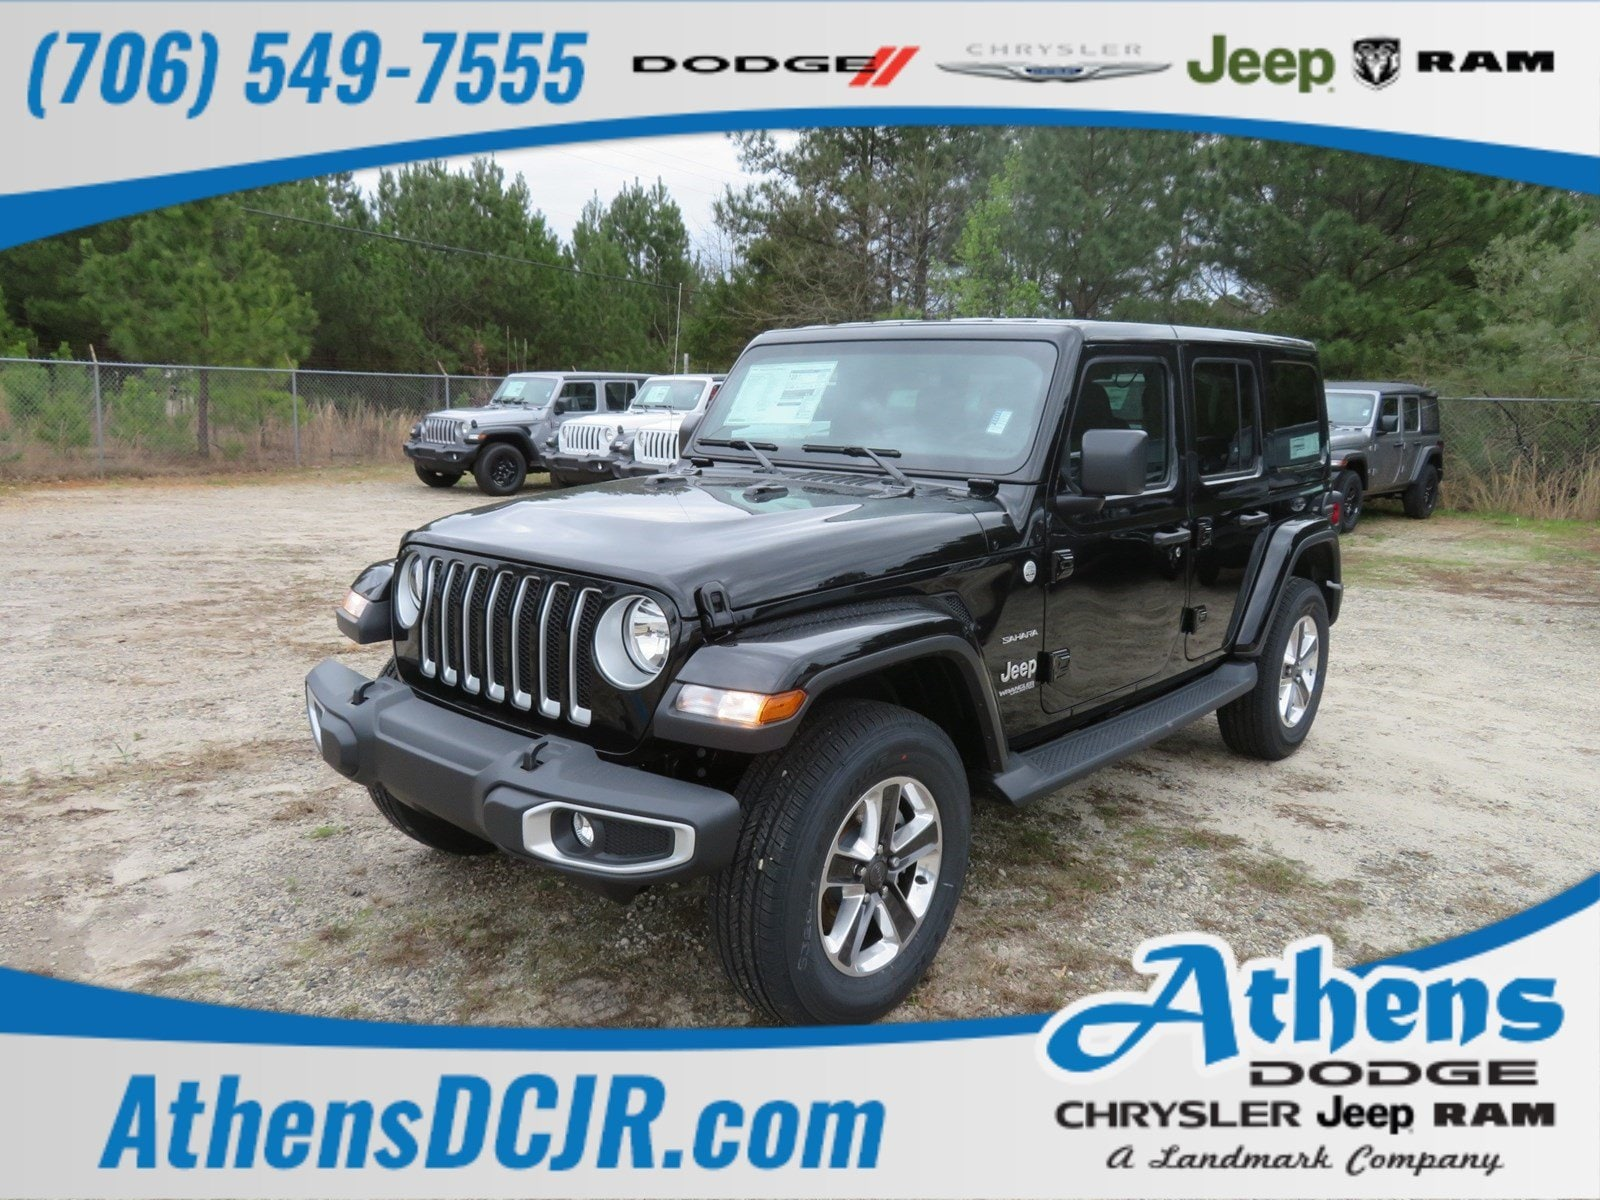 hight resolution of 2019 jeep wrangler unlimited sahara 4x4 for sale in athens ga